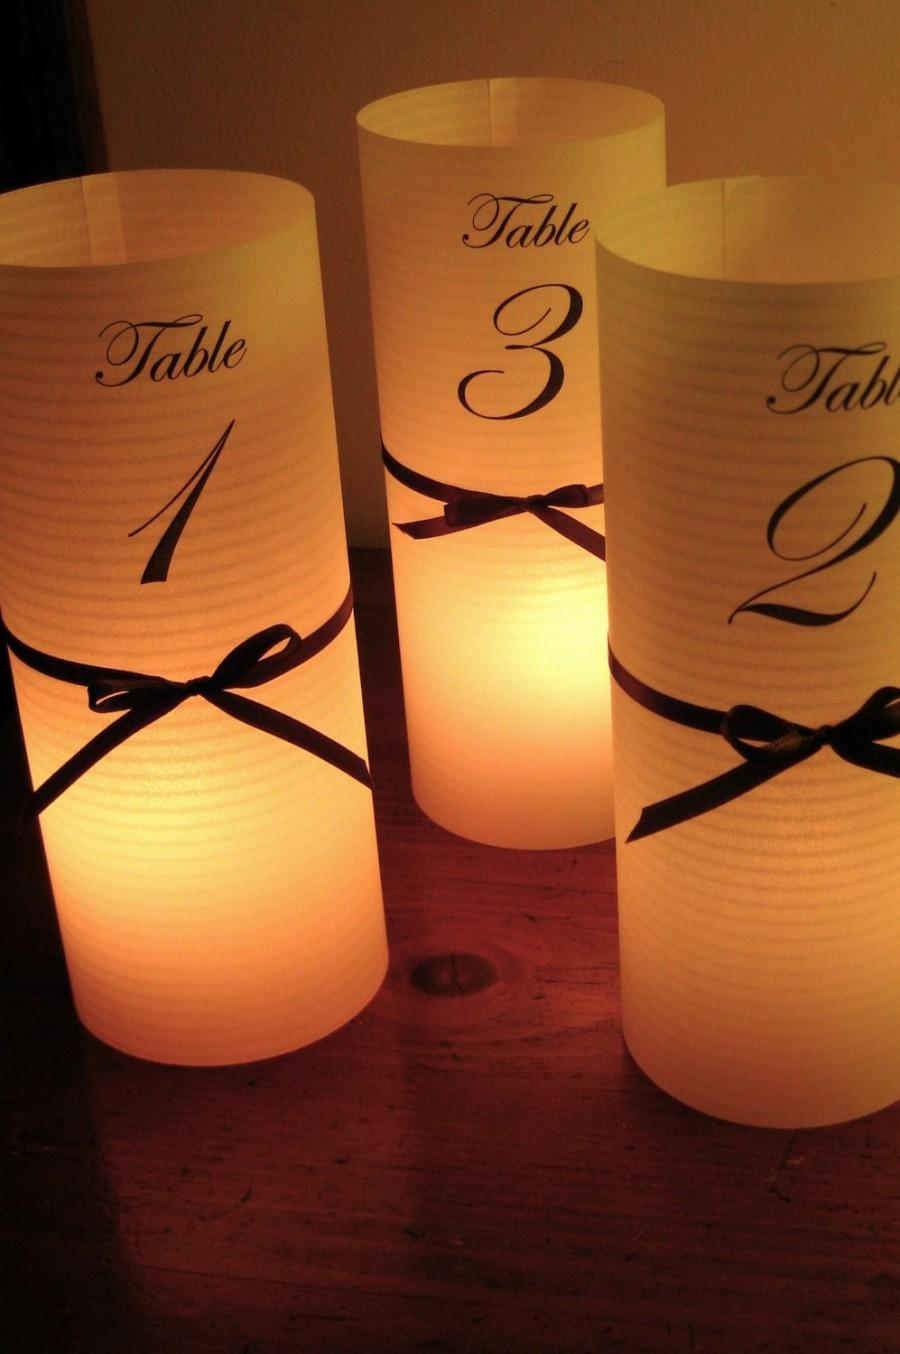 Mariage - 20 Luminaries as table numbers, centerpieces, decoration, lighting, candles, at your wedding, event, or ball